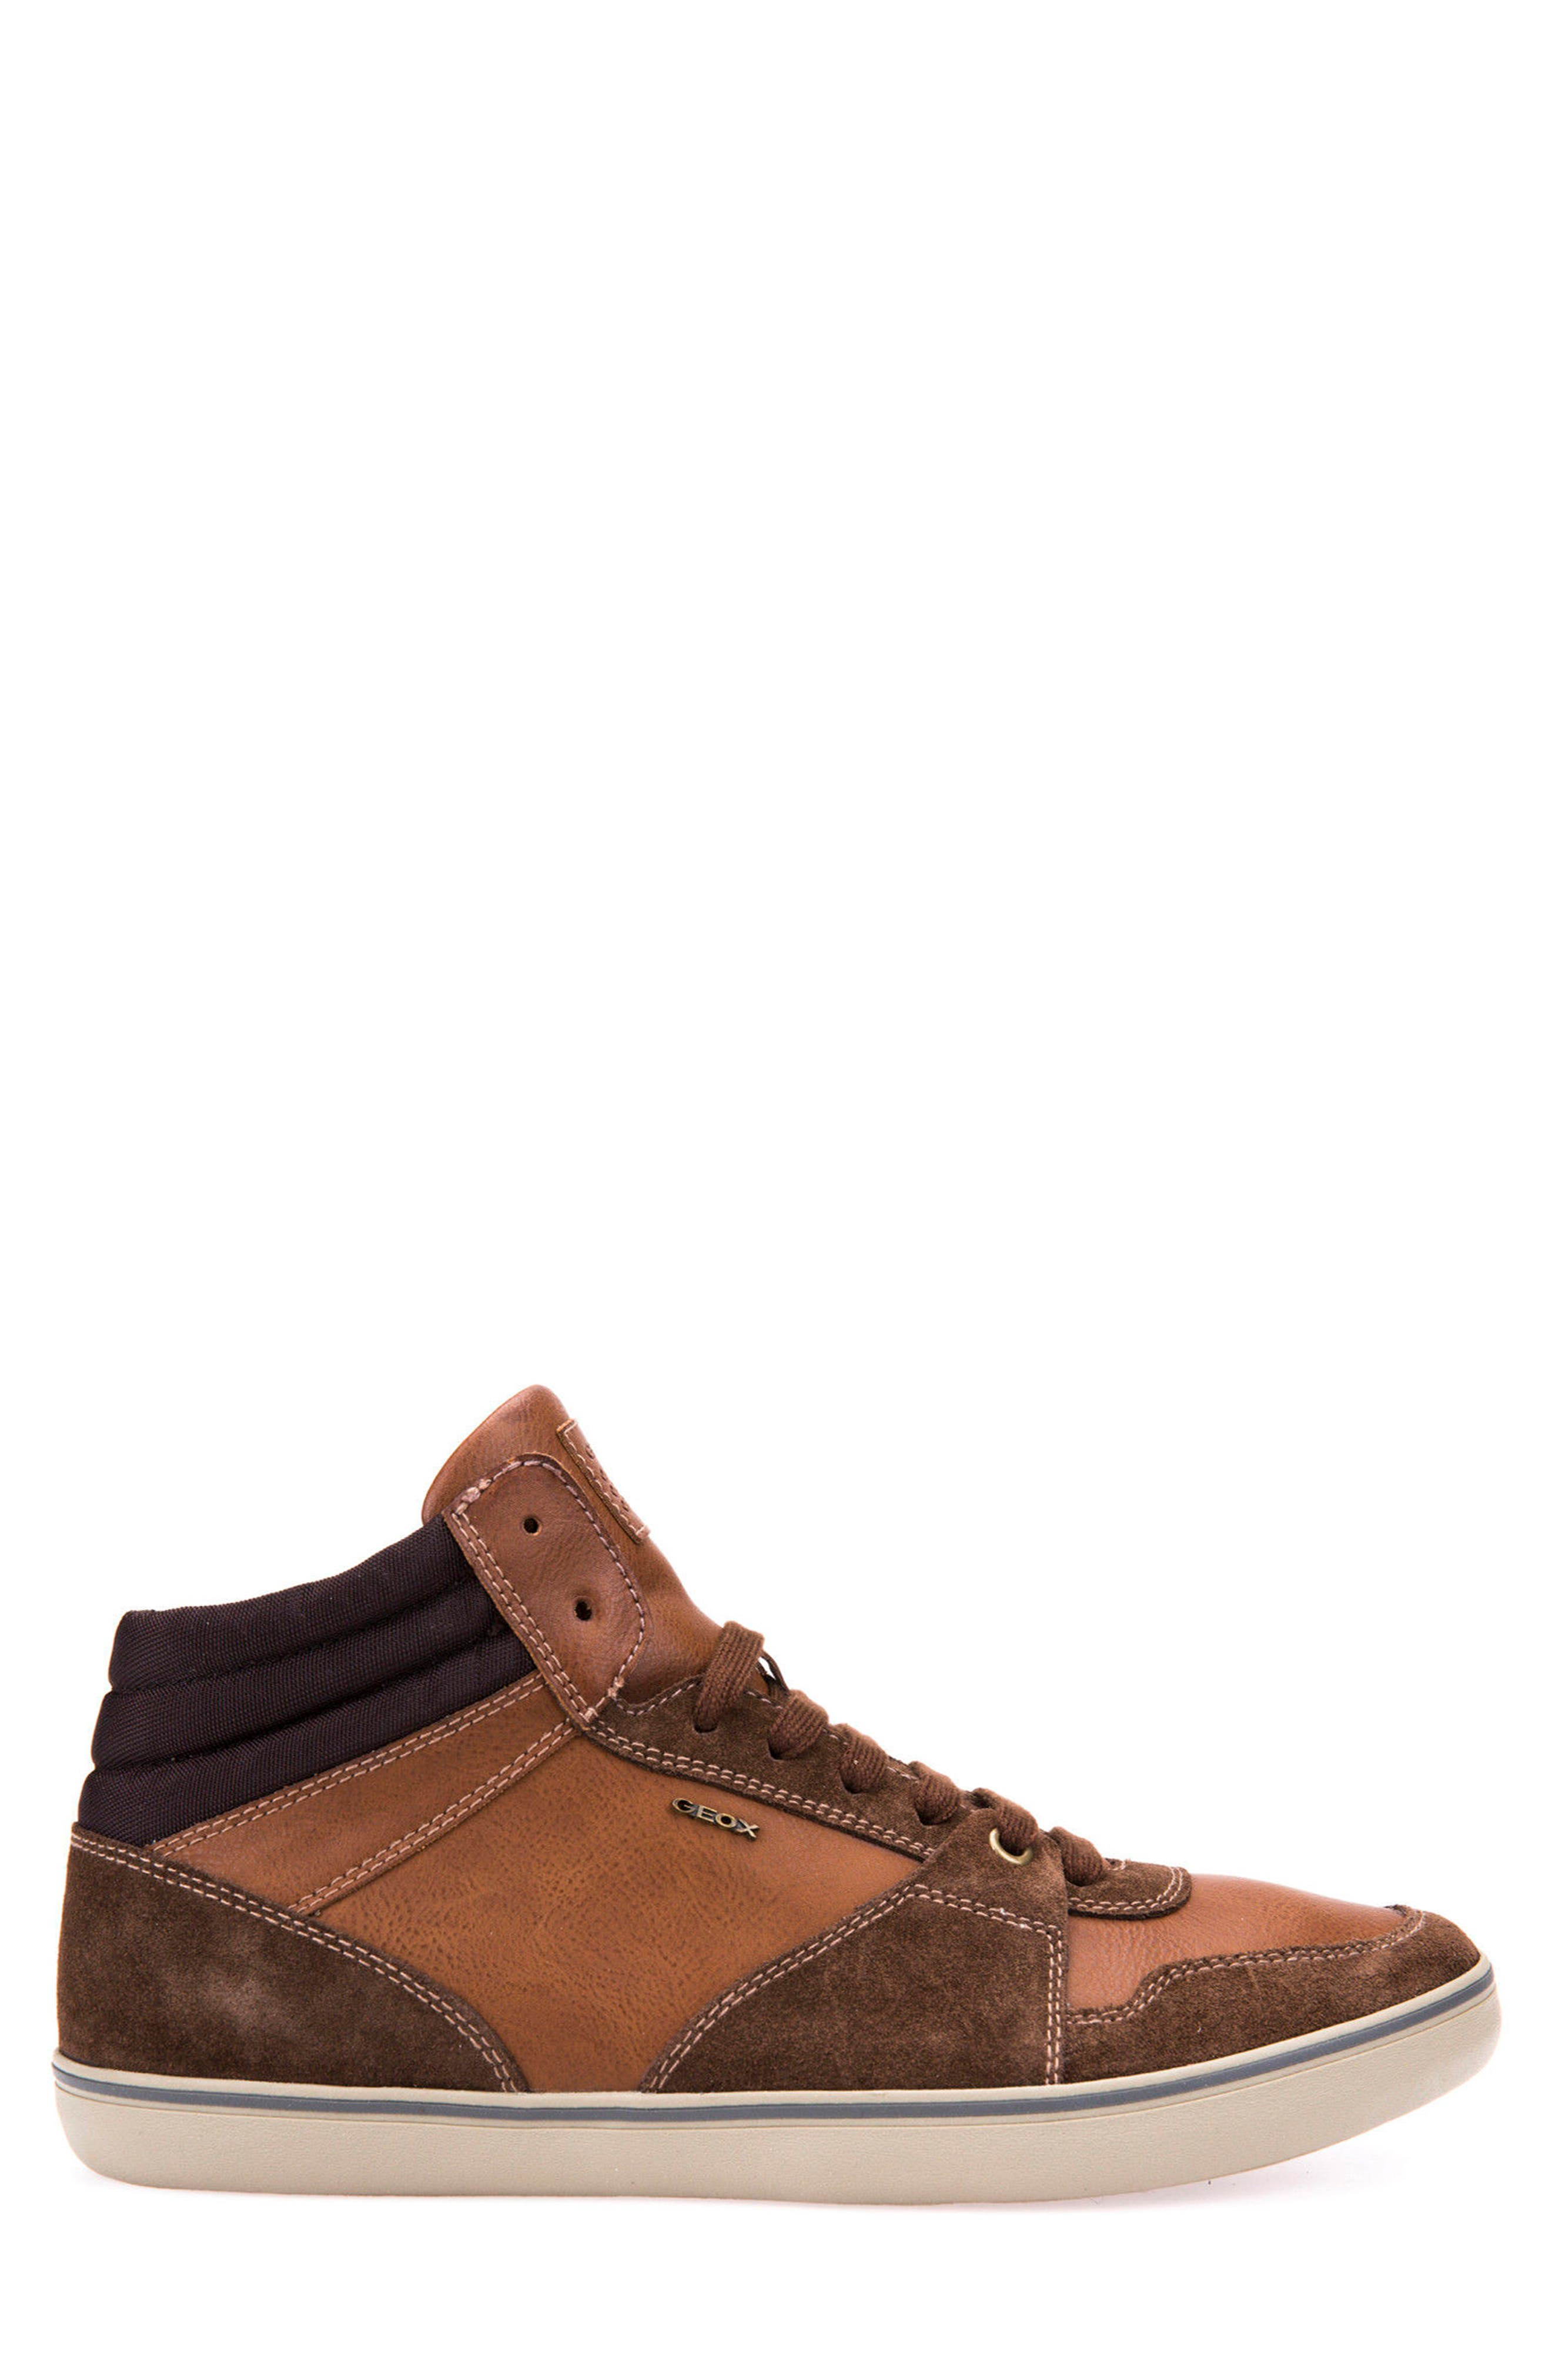 Box 30 High Top Sneaker,                             Alternate thumbnail 4, color,                             Ebony/ Brown Cotto